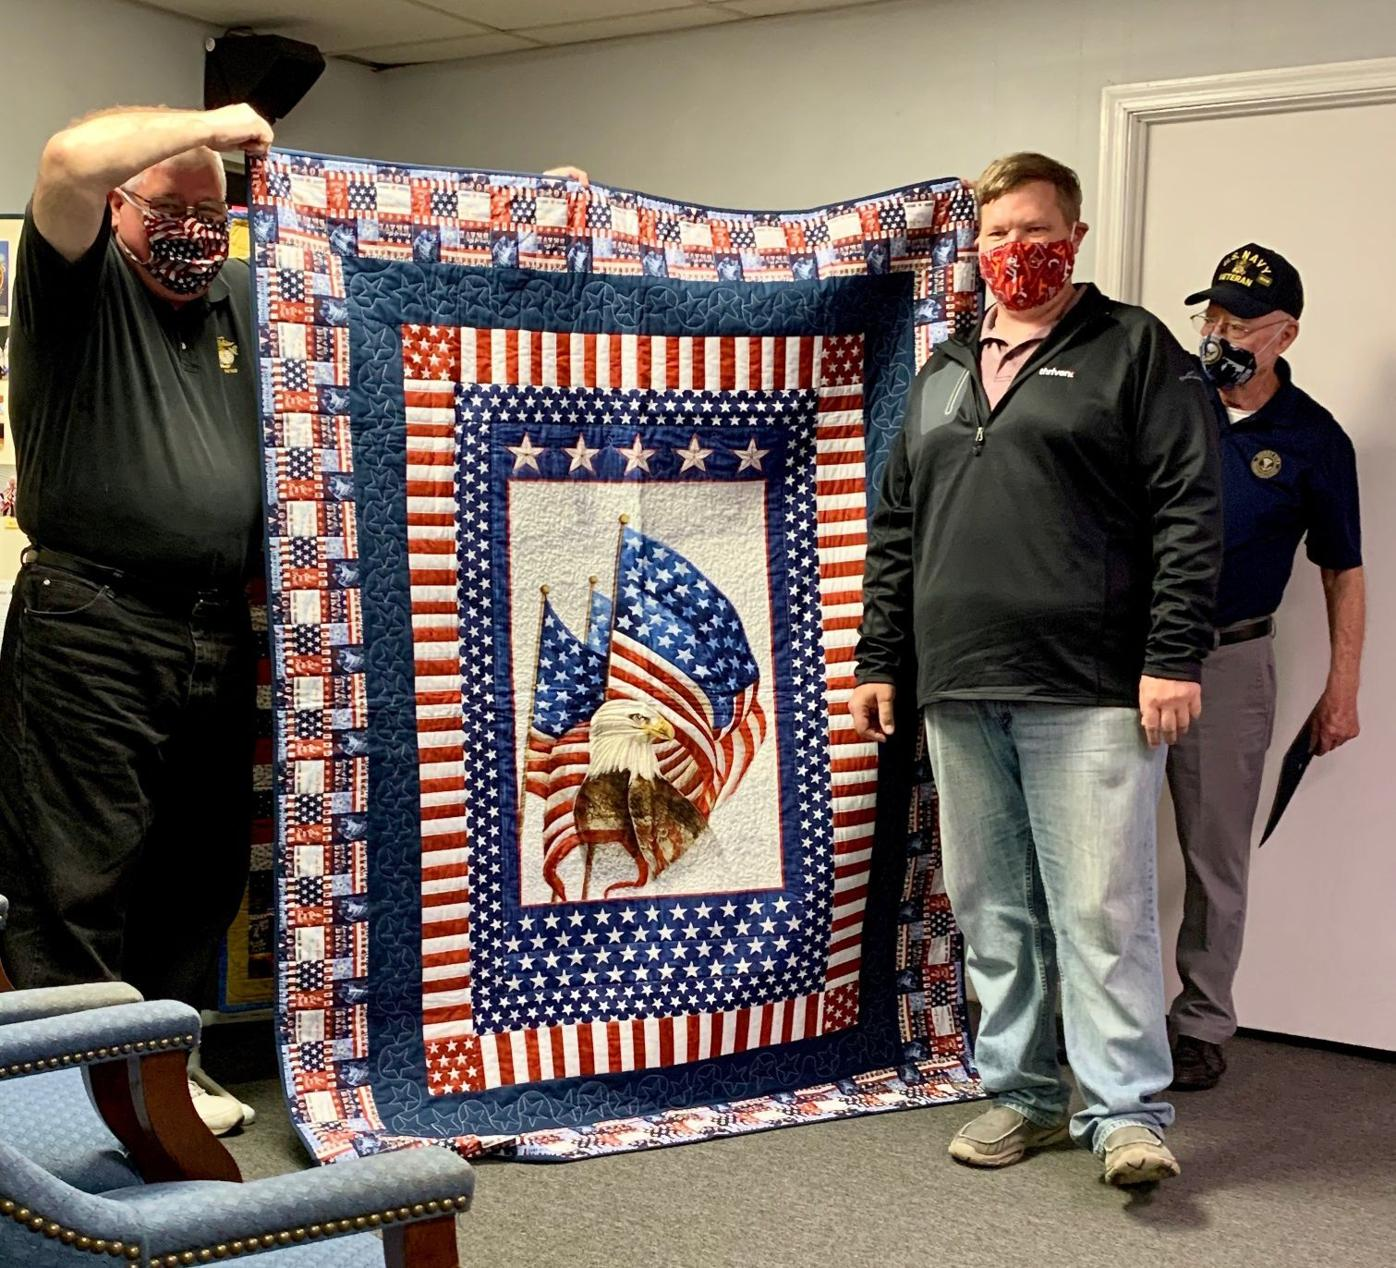 Thanking veterans with quilts